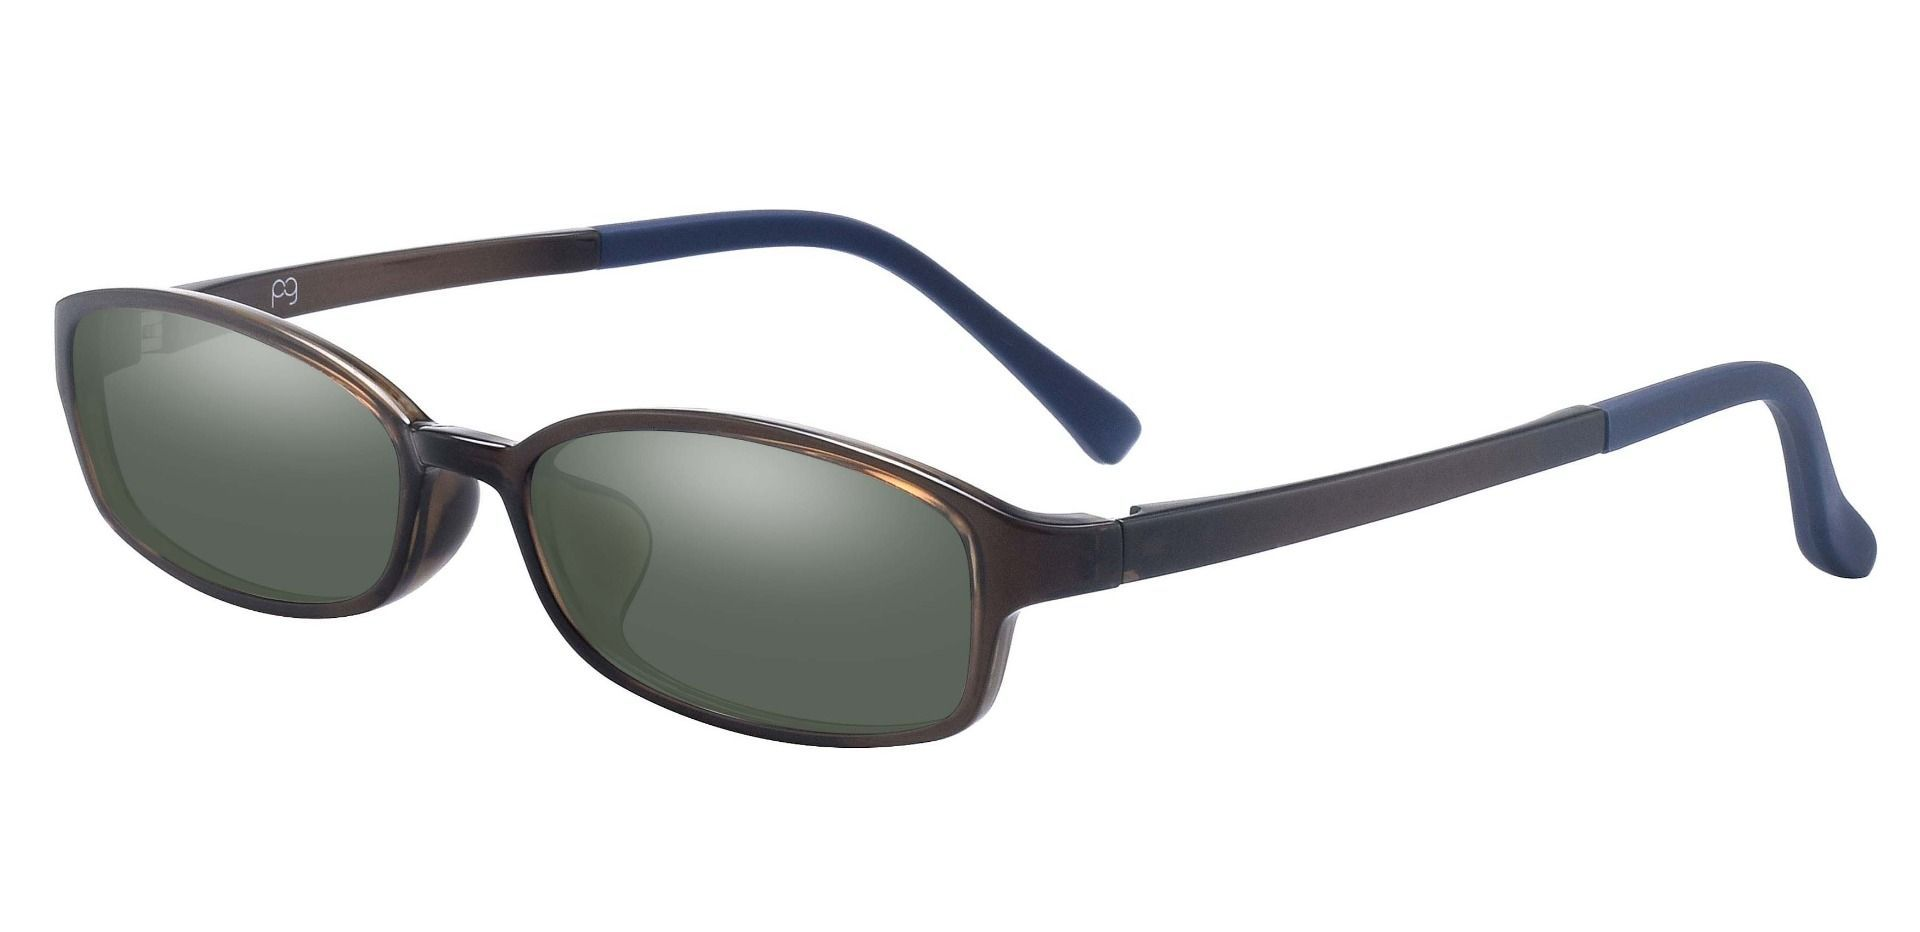 Henny Oval Single Vision Sunglasses - Green Frame With Green Lenses